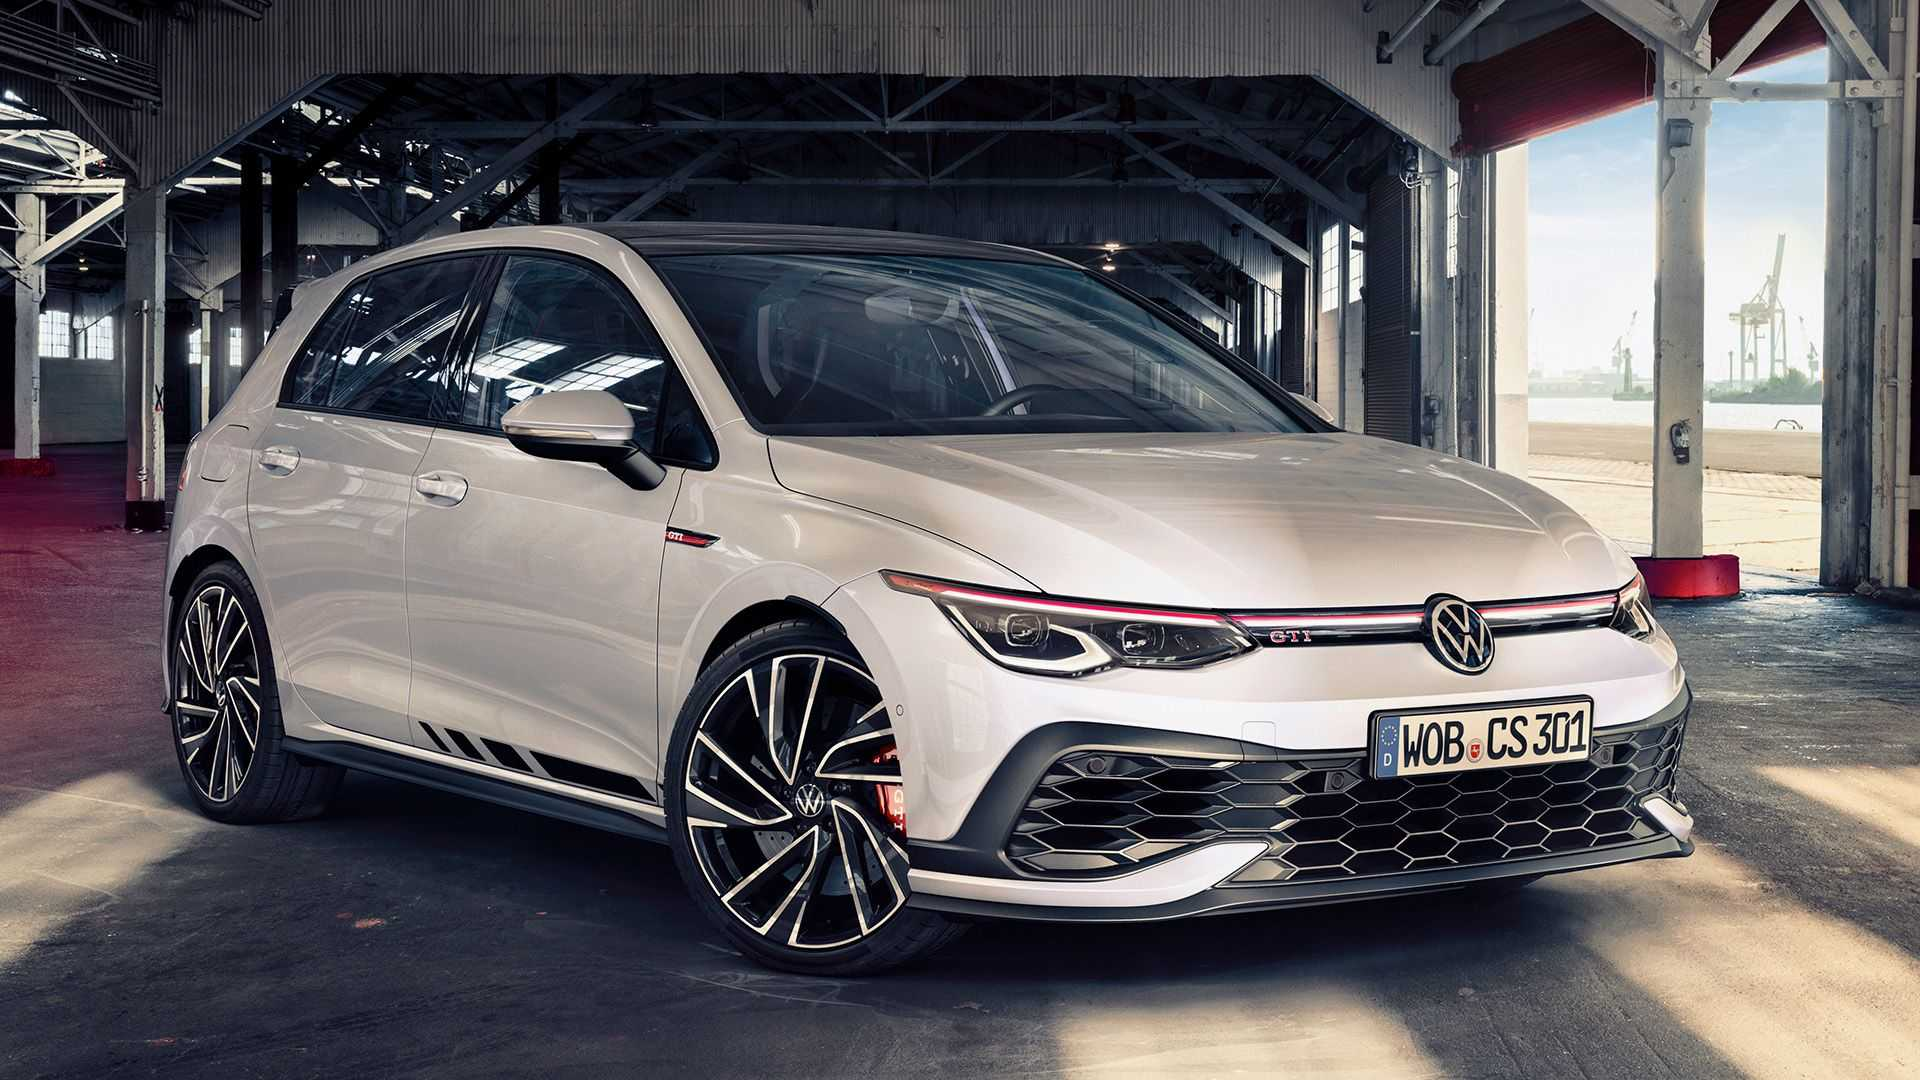 The eighth-gen Volkswagen Golf GTI hot hatch debuted this spring, and today, the range-topping Clubsport modification joins it with added power and a driving mode called Special.